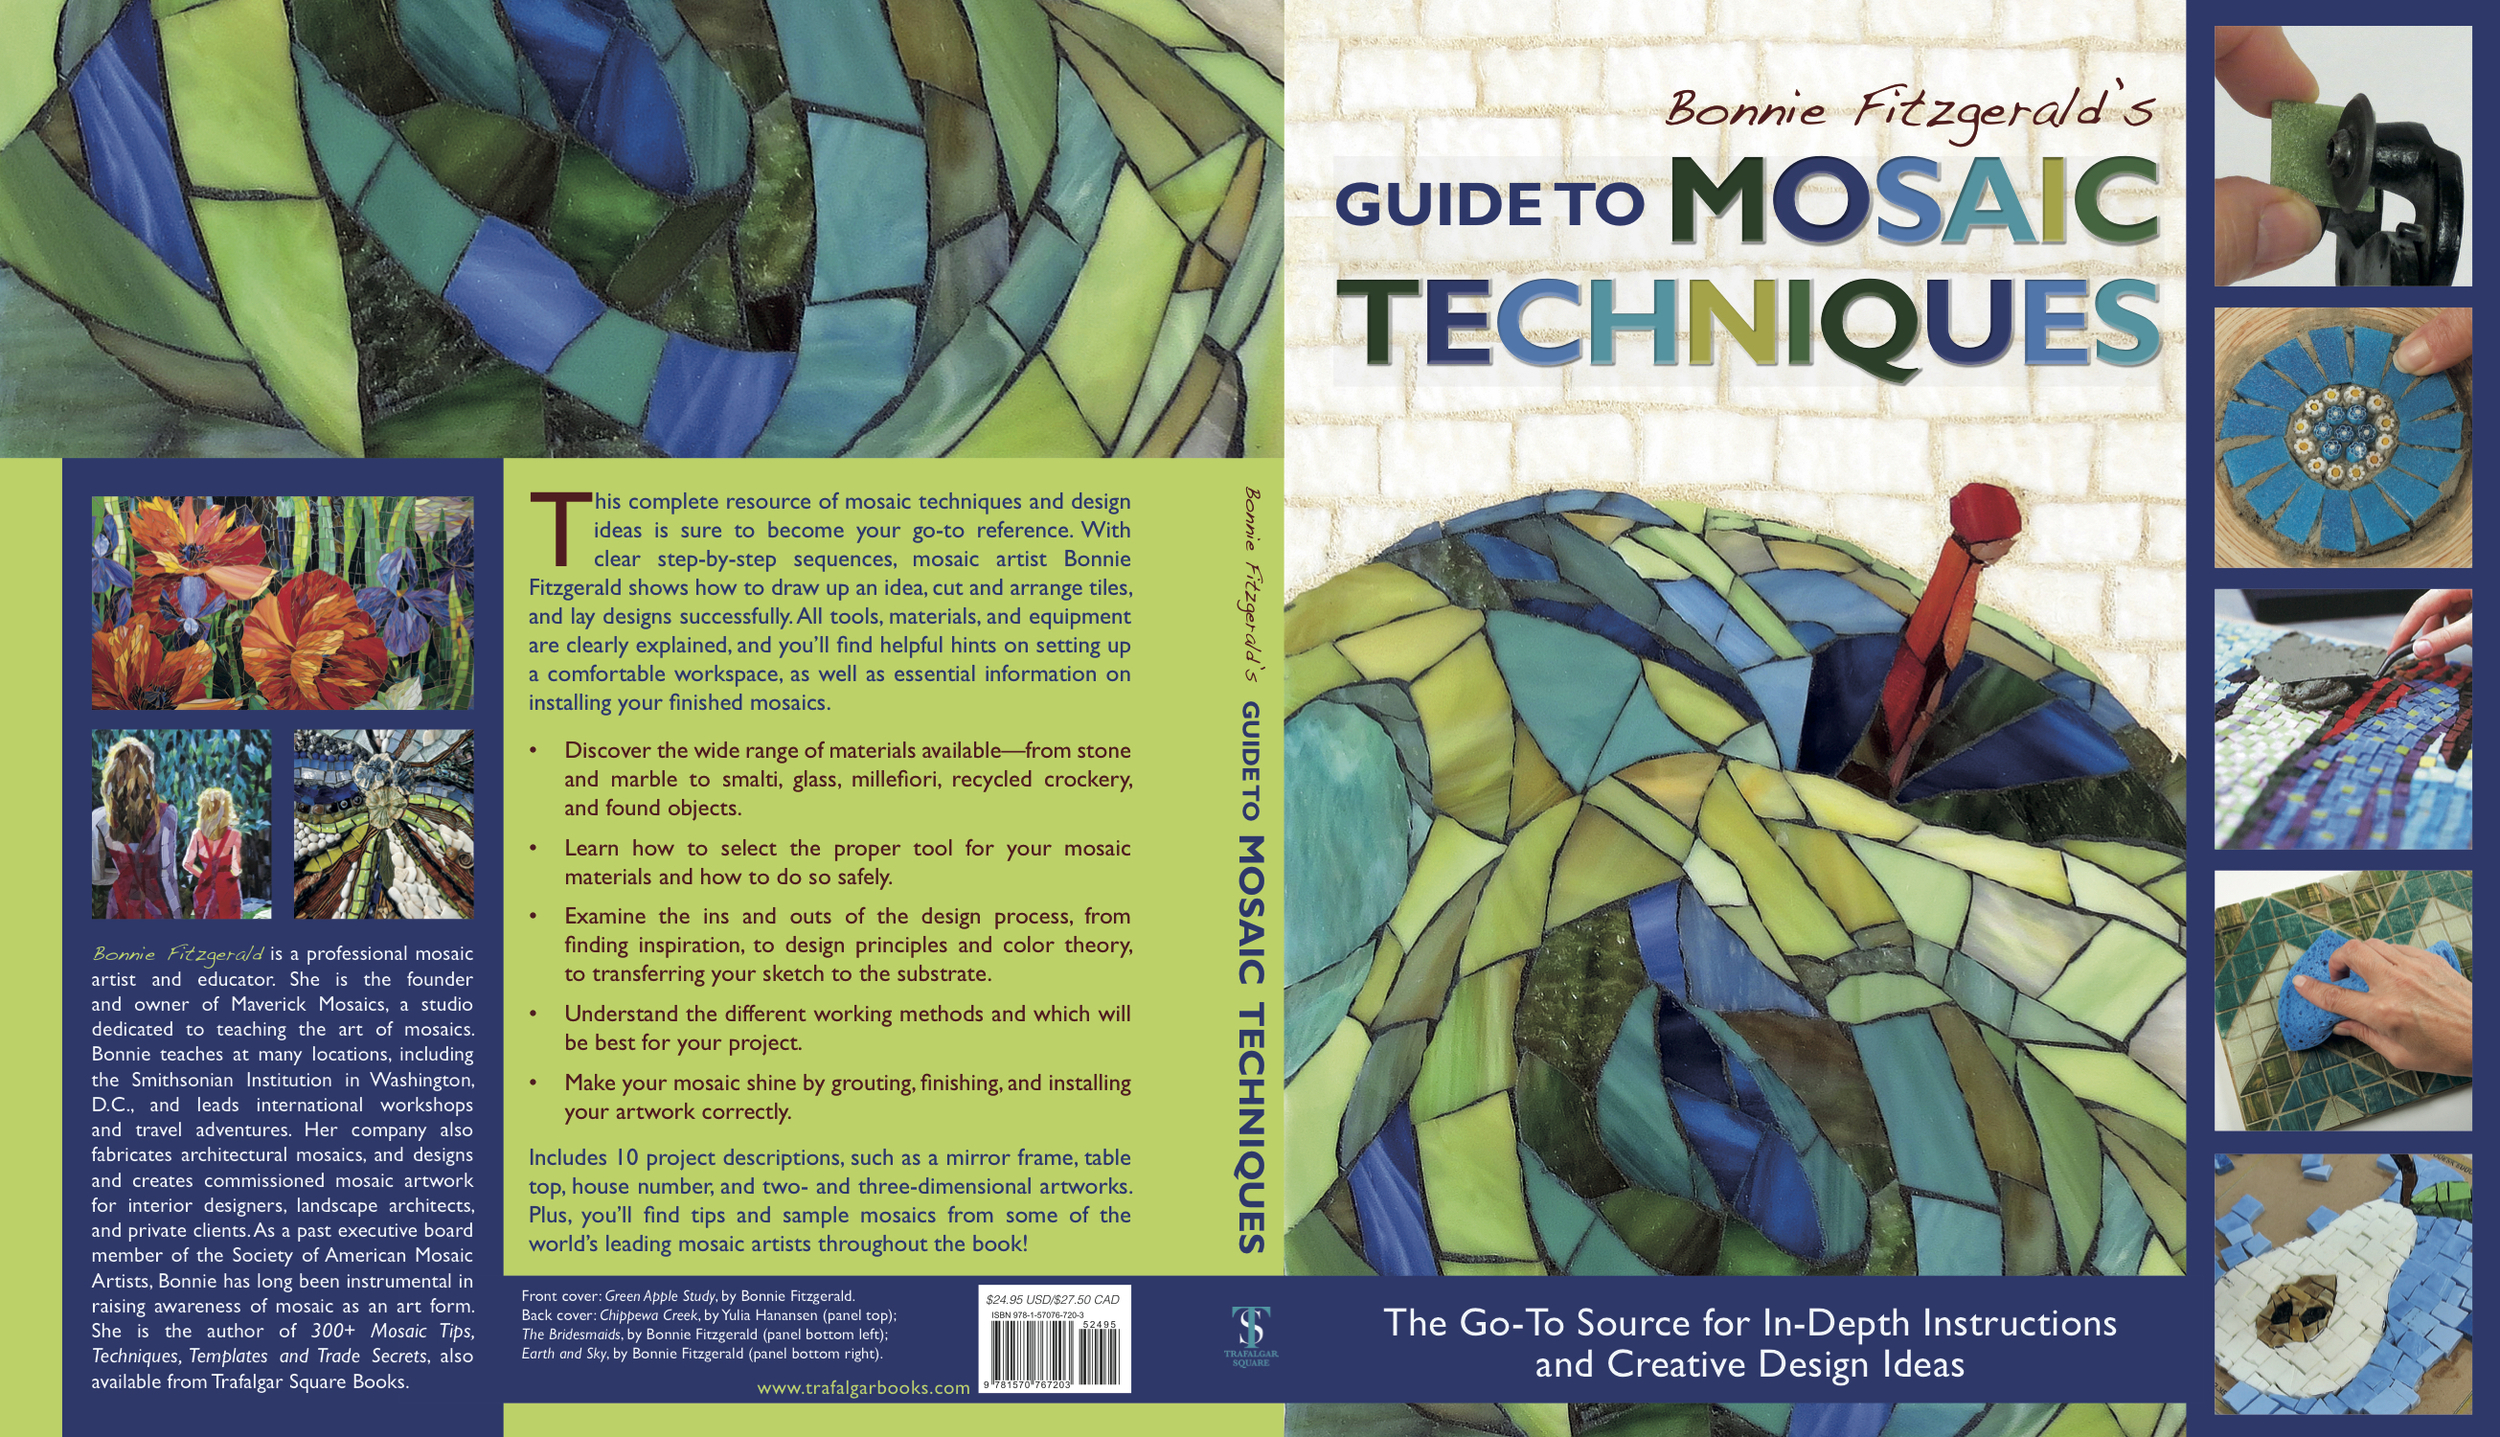 BF Guide to Mosaic Techniques.jpg